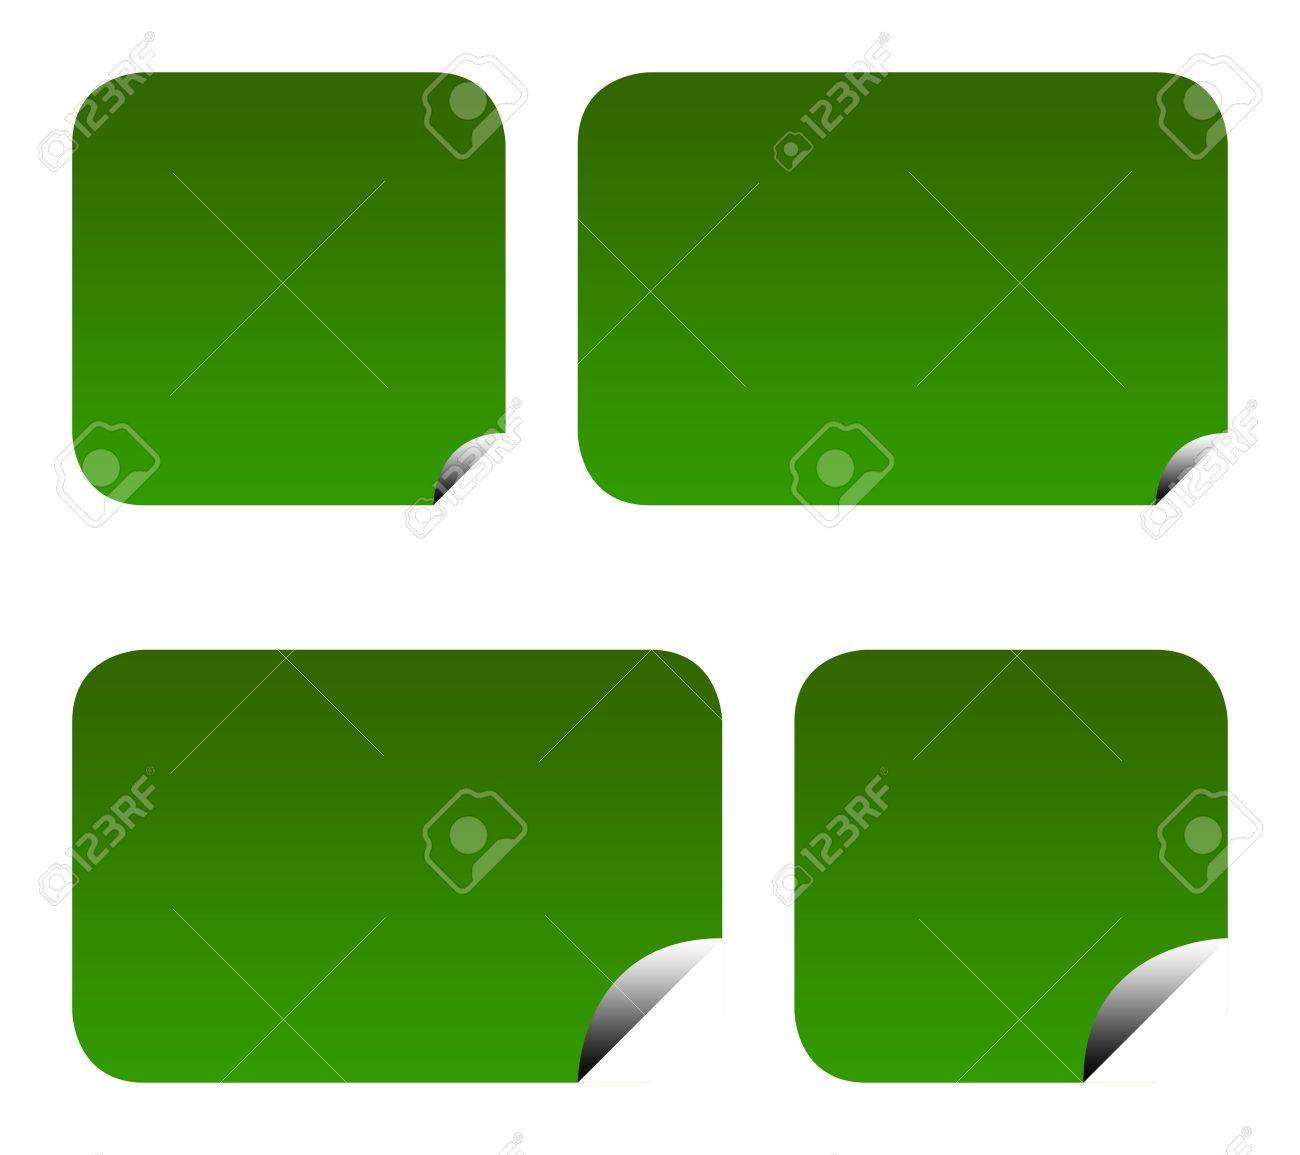 Green eco labels or stickers with peeled corners, isolated on white background. Stock Photo - 6984881